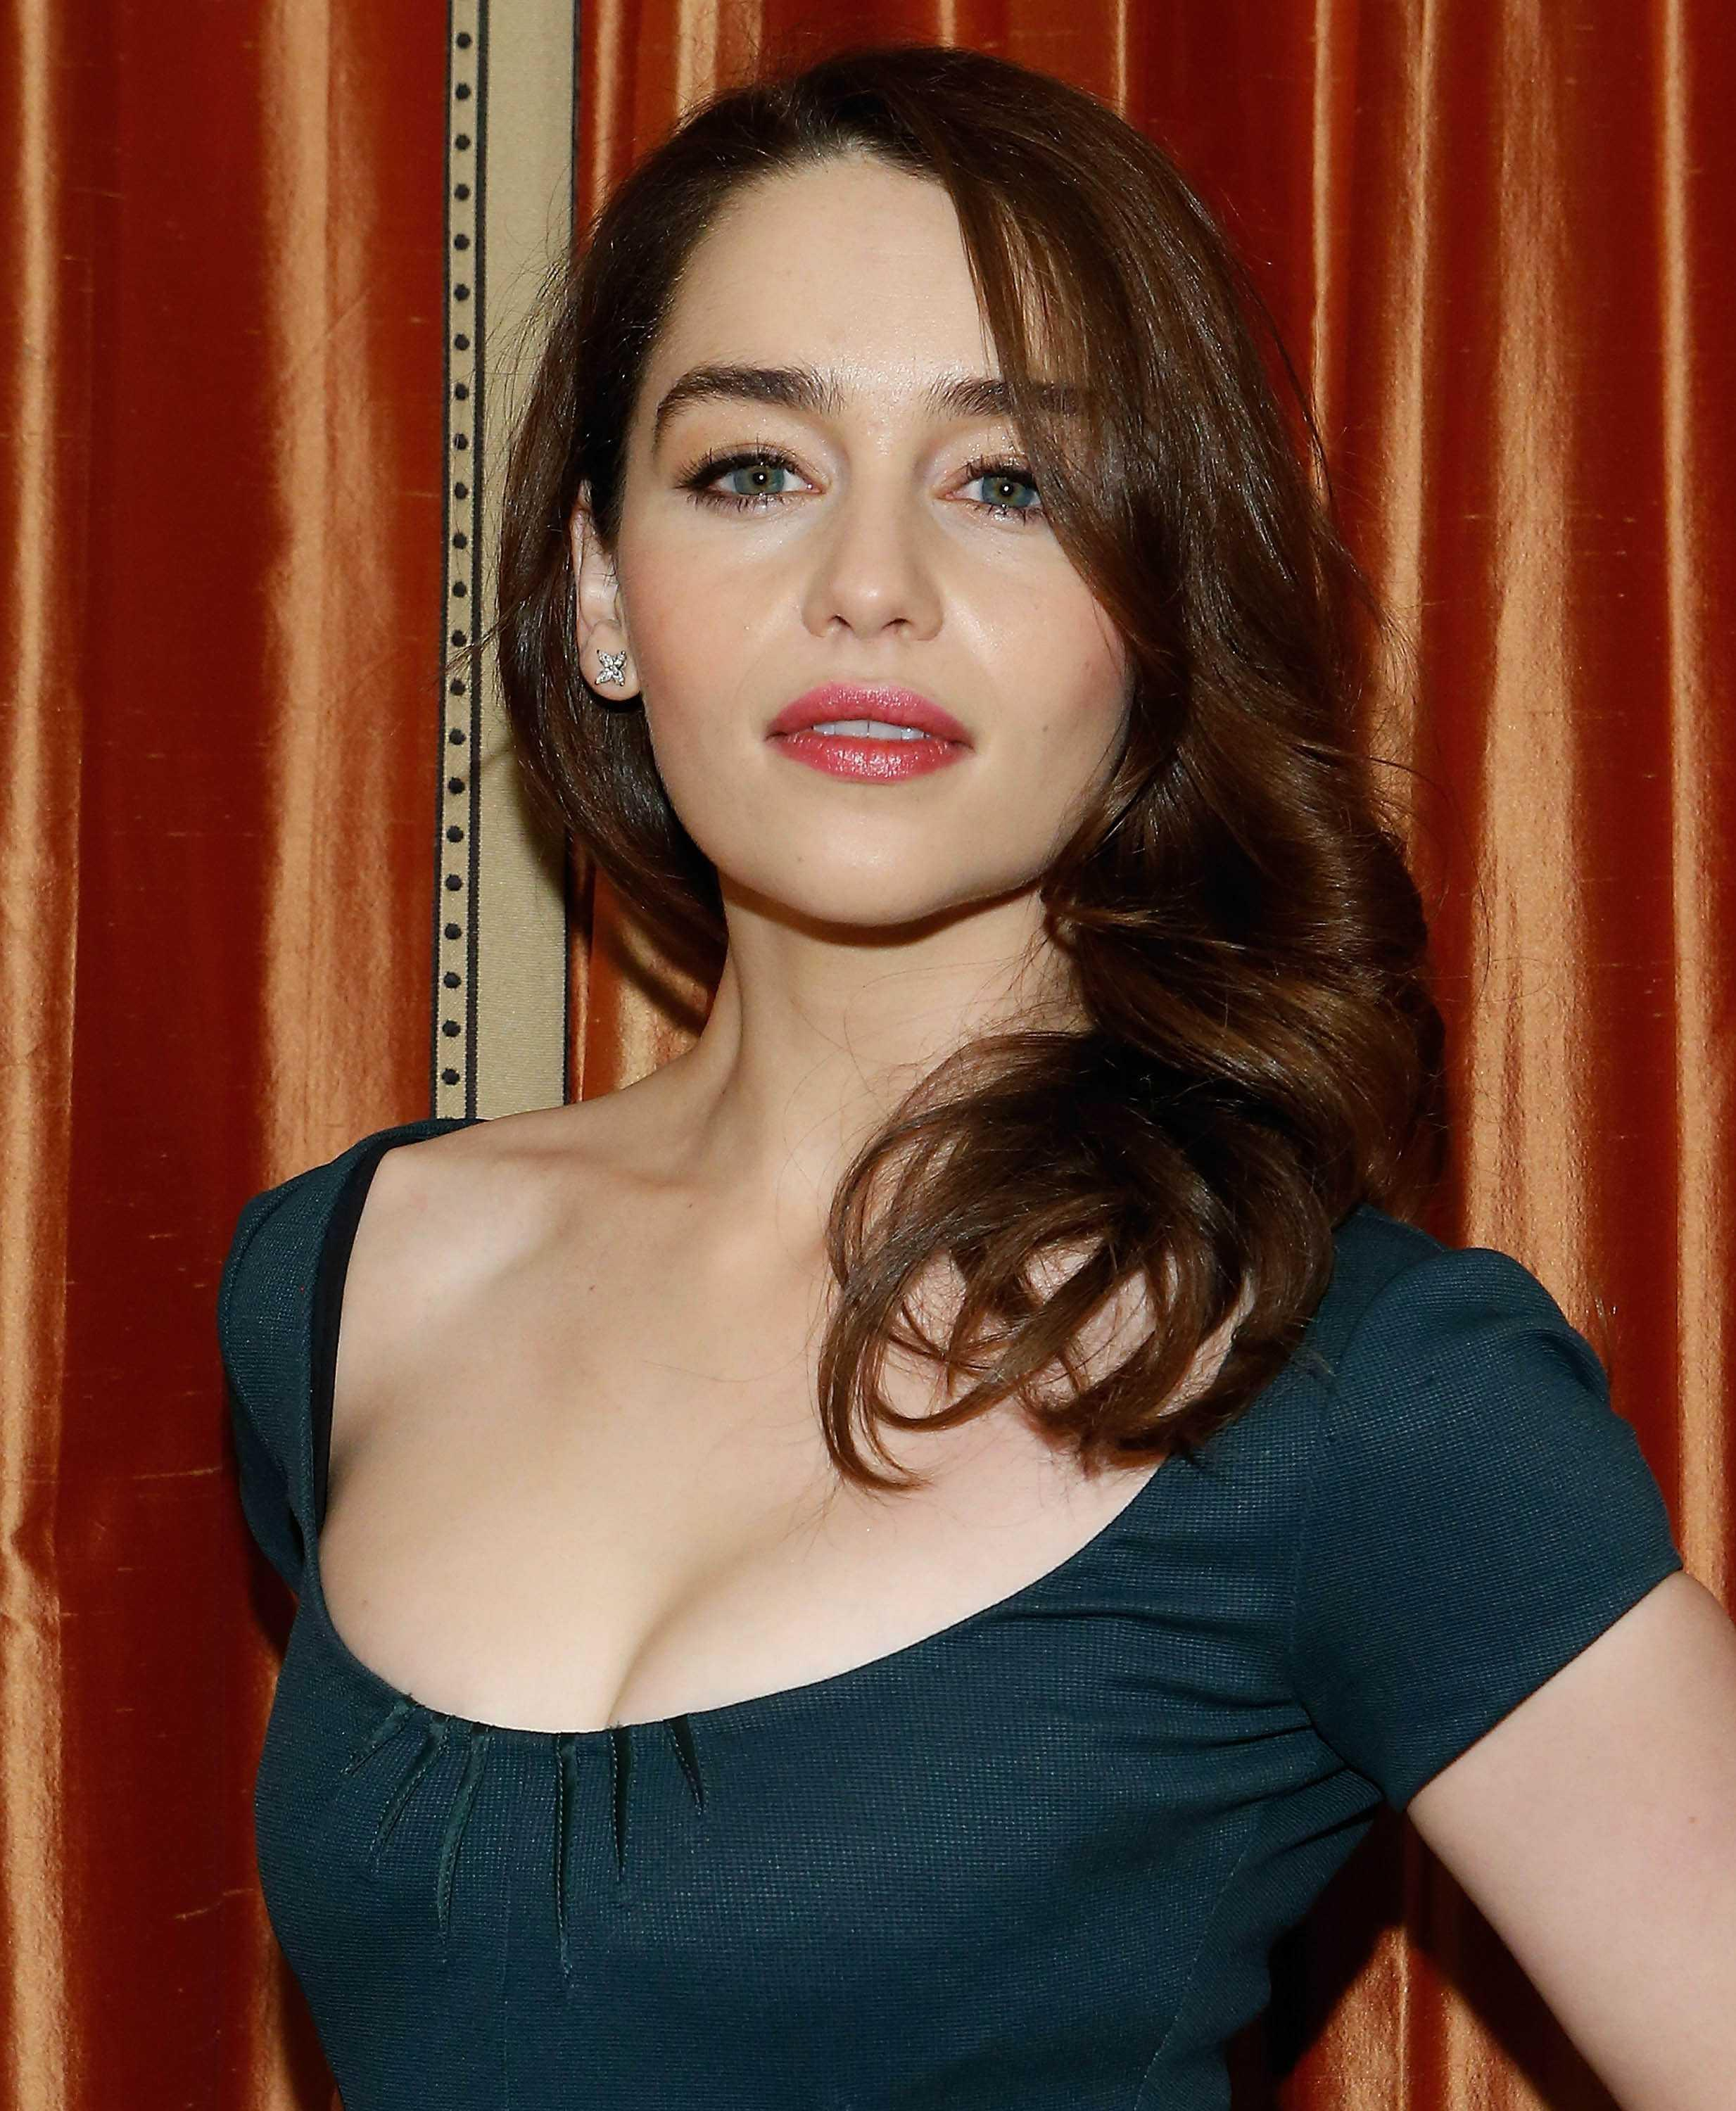 Cleavage Emilia Clarke nude (84 foto and video), Pussy, Fappening, Feet, braless 2017